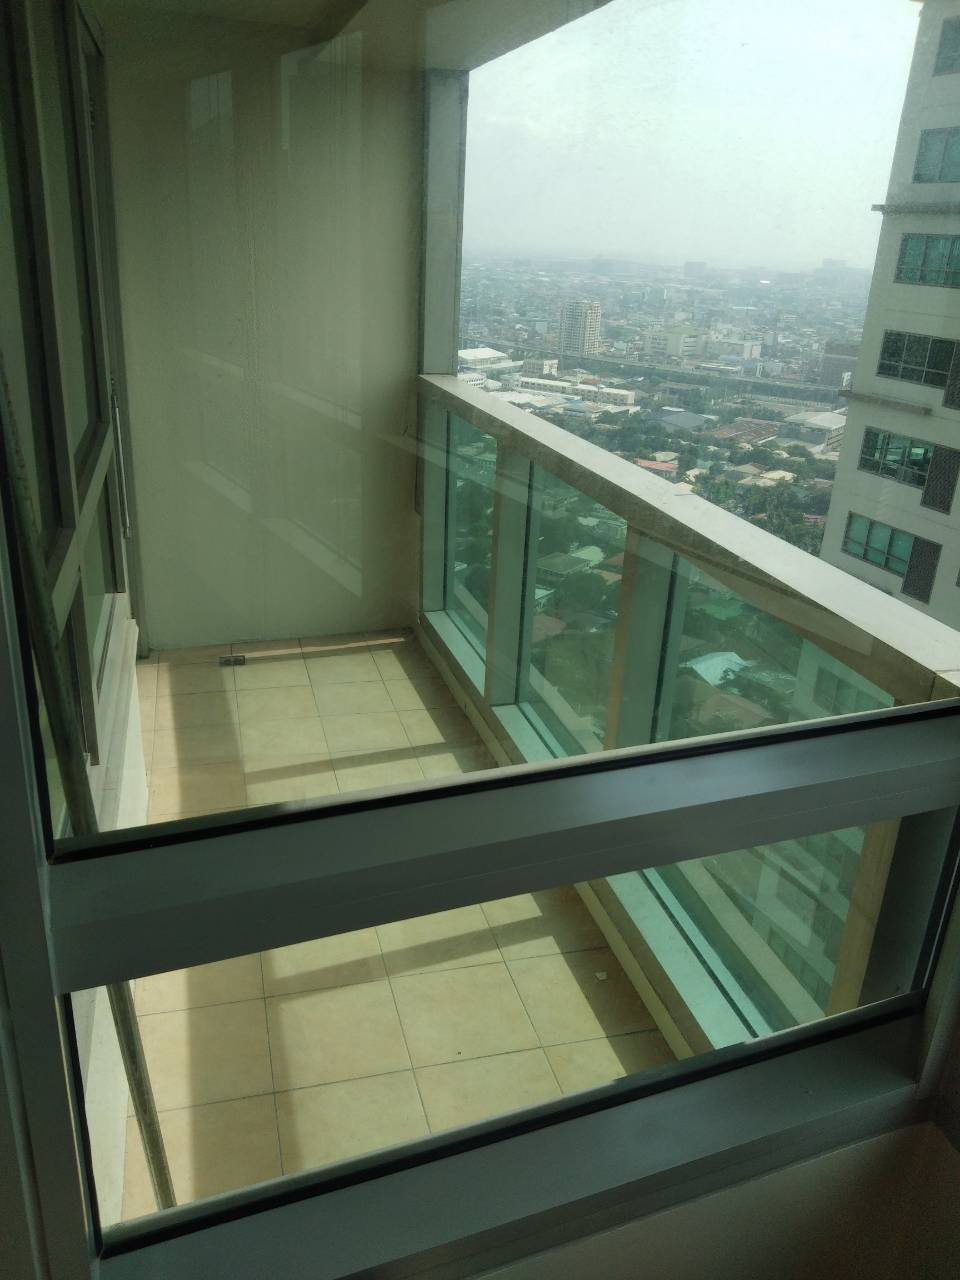 2 Bedrooms Condo For Rent, The Residences At Greenbelt Balcony 2